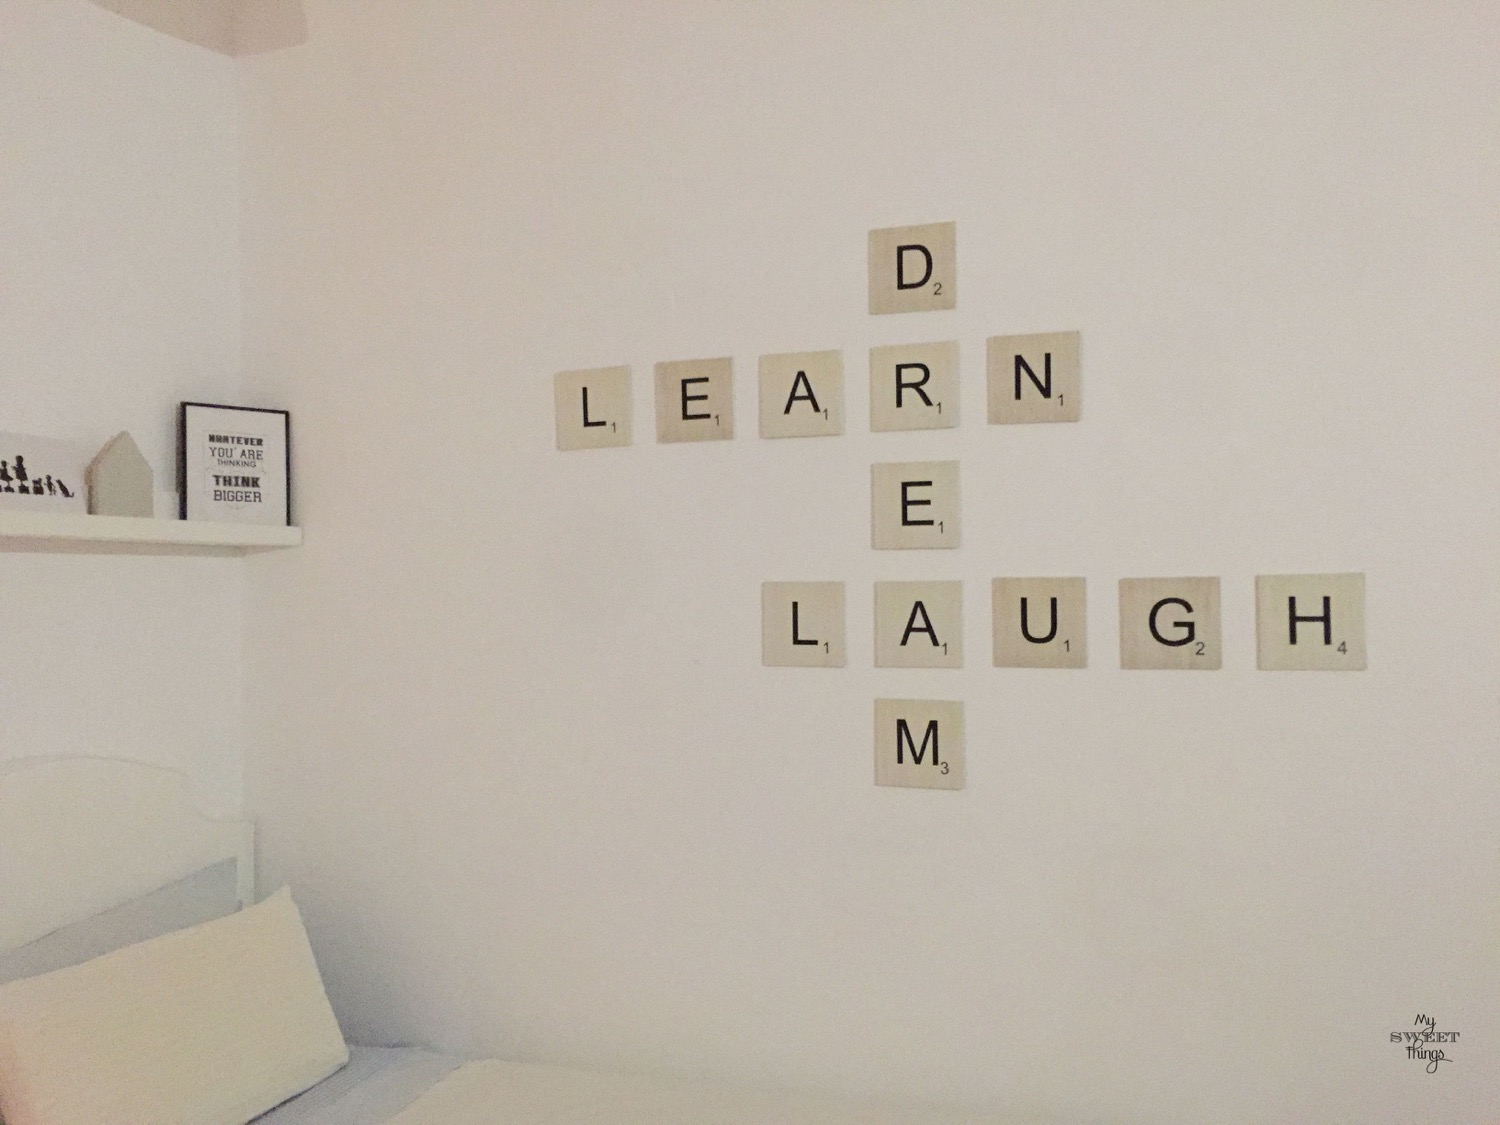 Decoracion de pared con Scrabble · Via www.sweethings.net